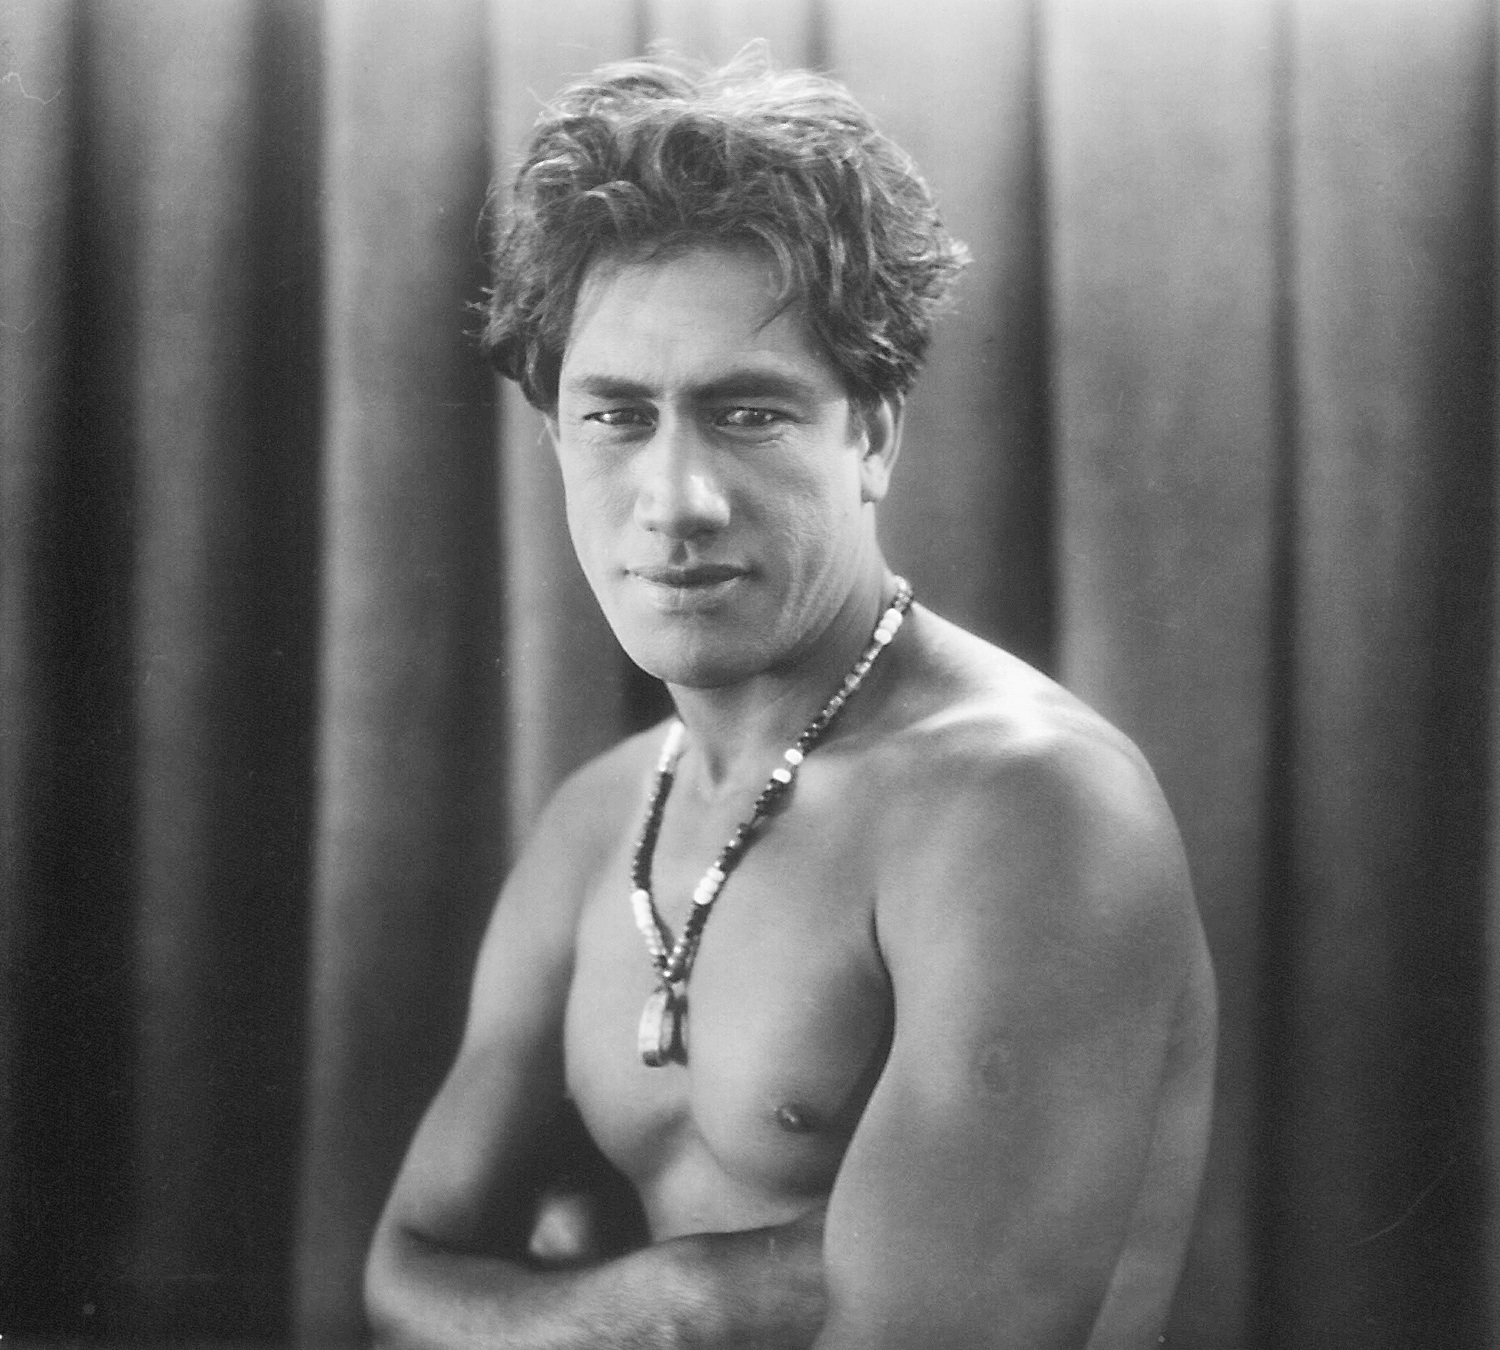 A portrait of Duke Kahanamoku taken for use in Hollywood studios. Photo by The Paragon Agency.